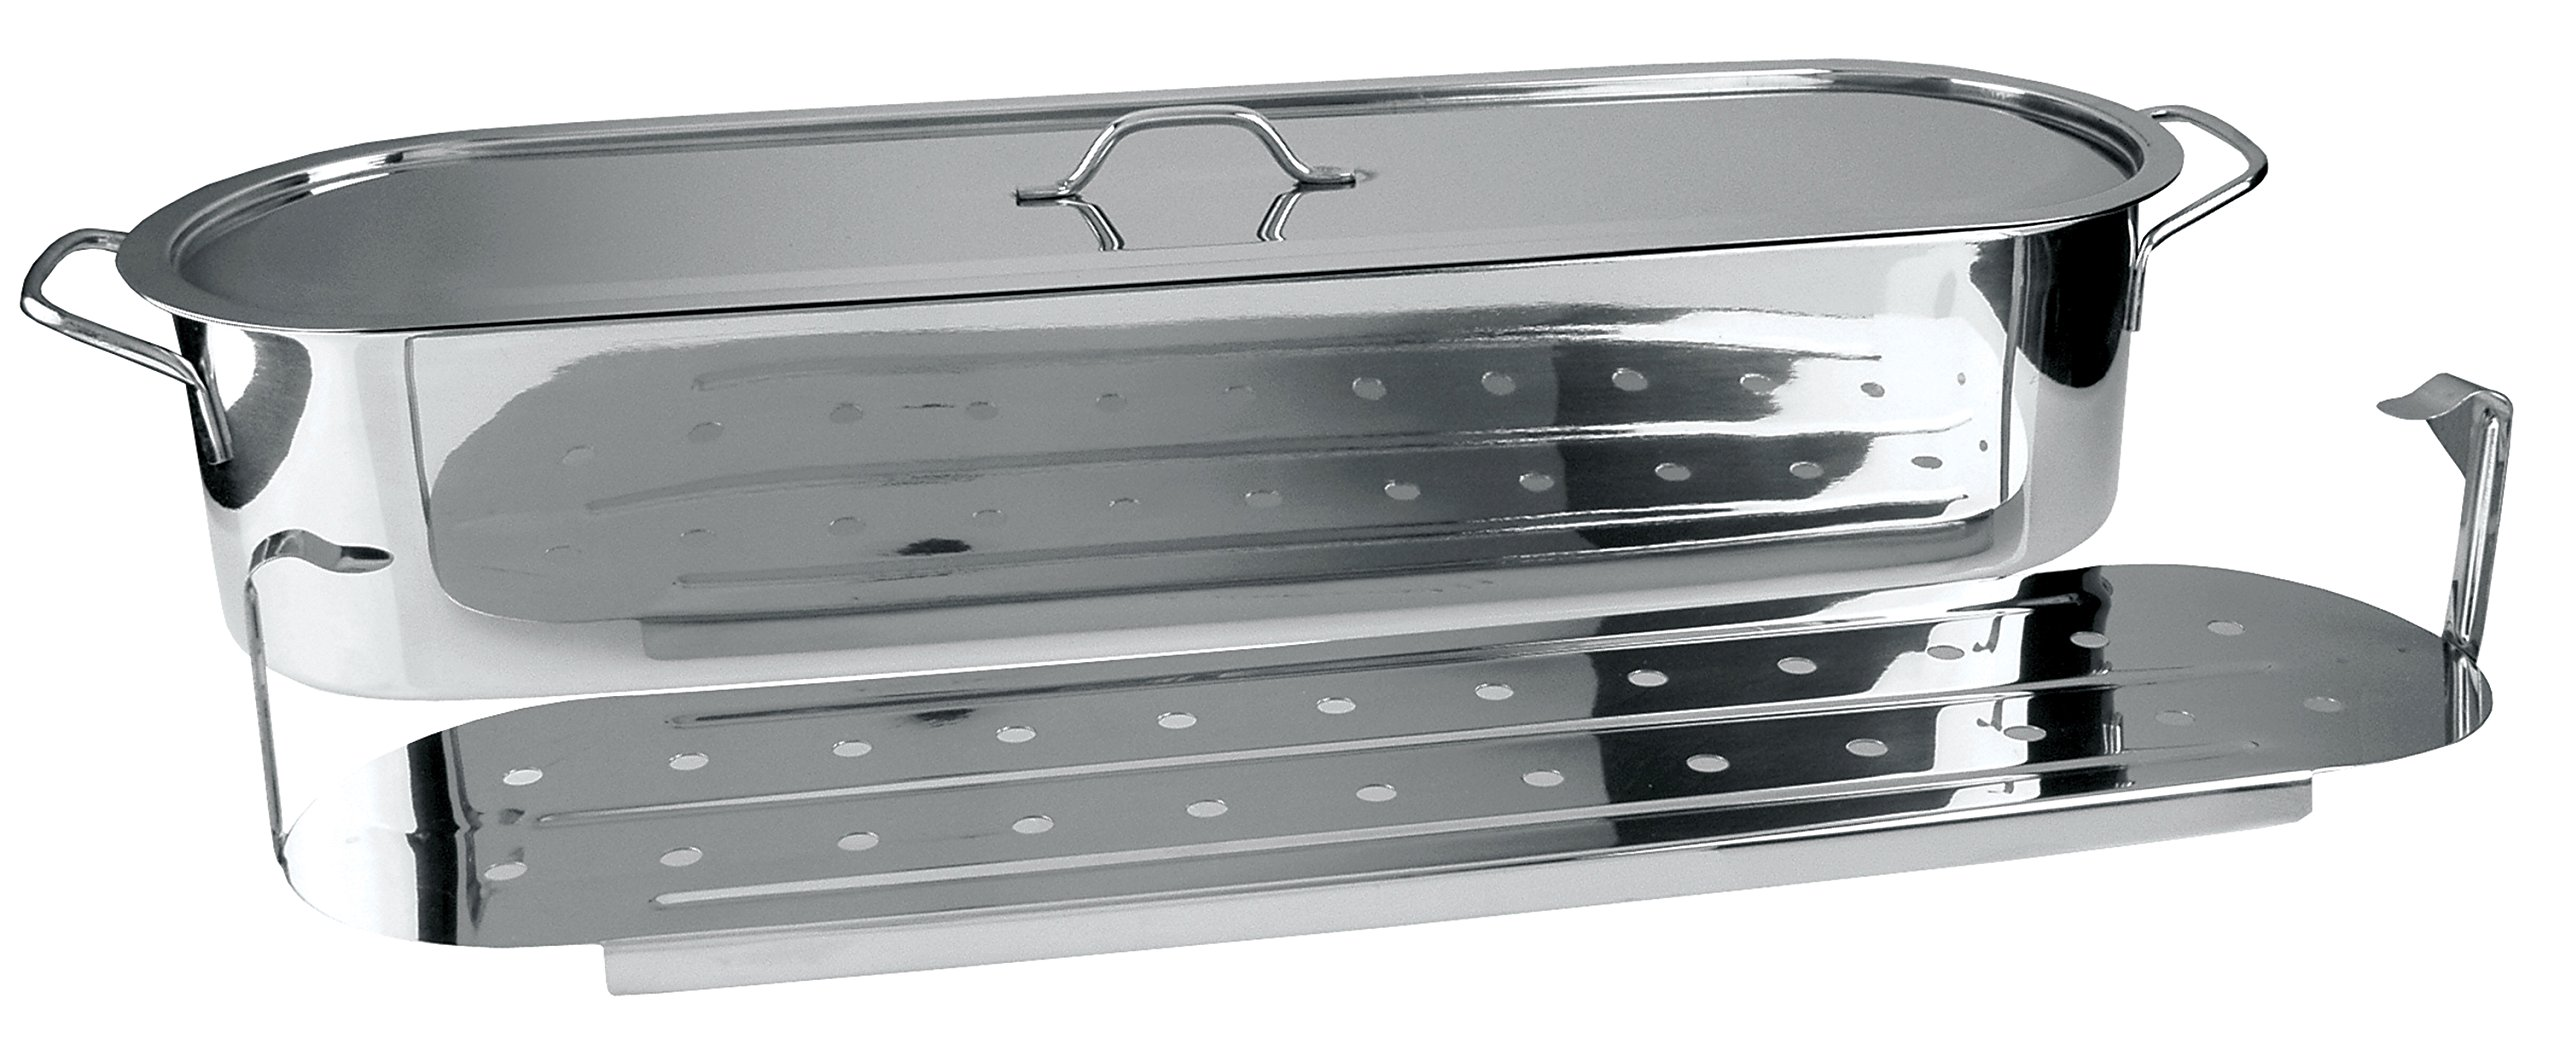 Stainless Steel 18-Inch Fish Poacher by Nantucket Seafood